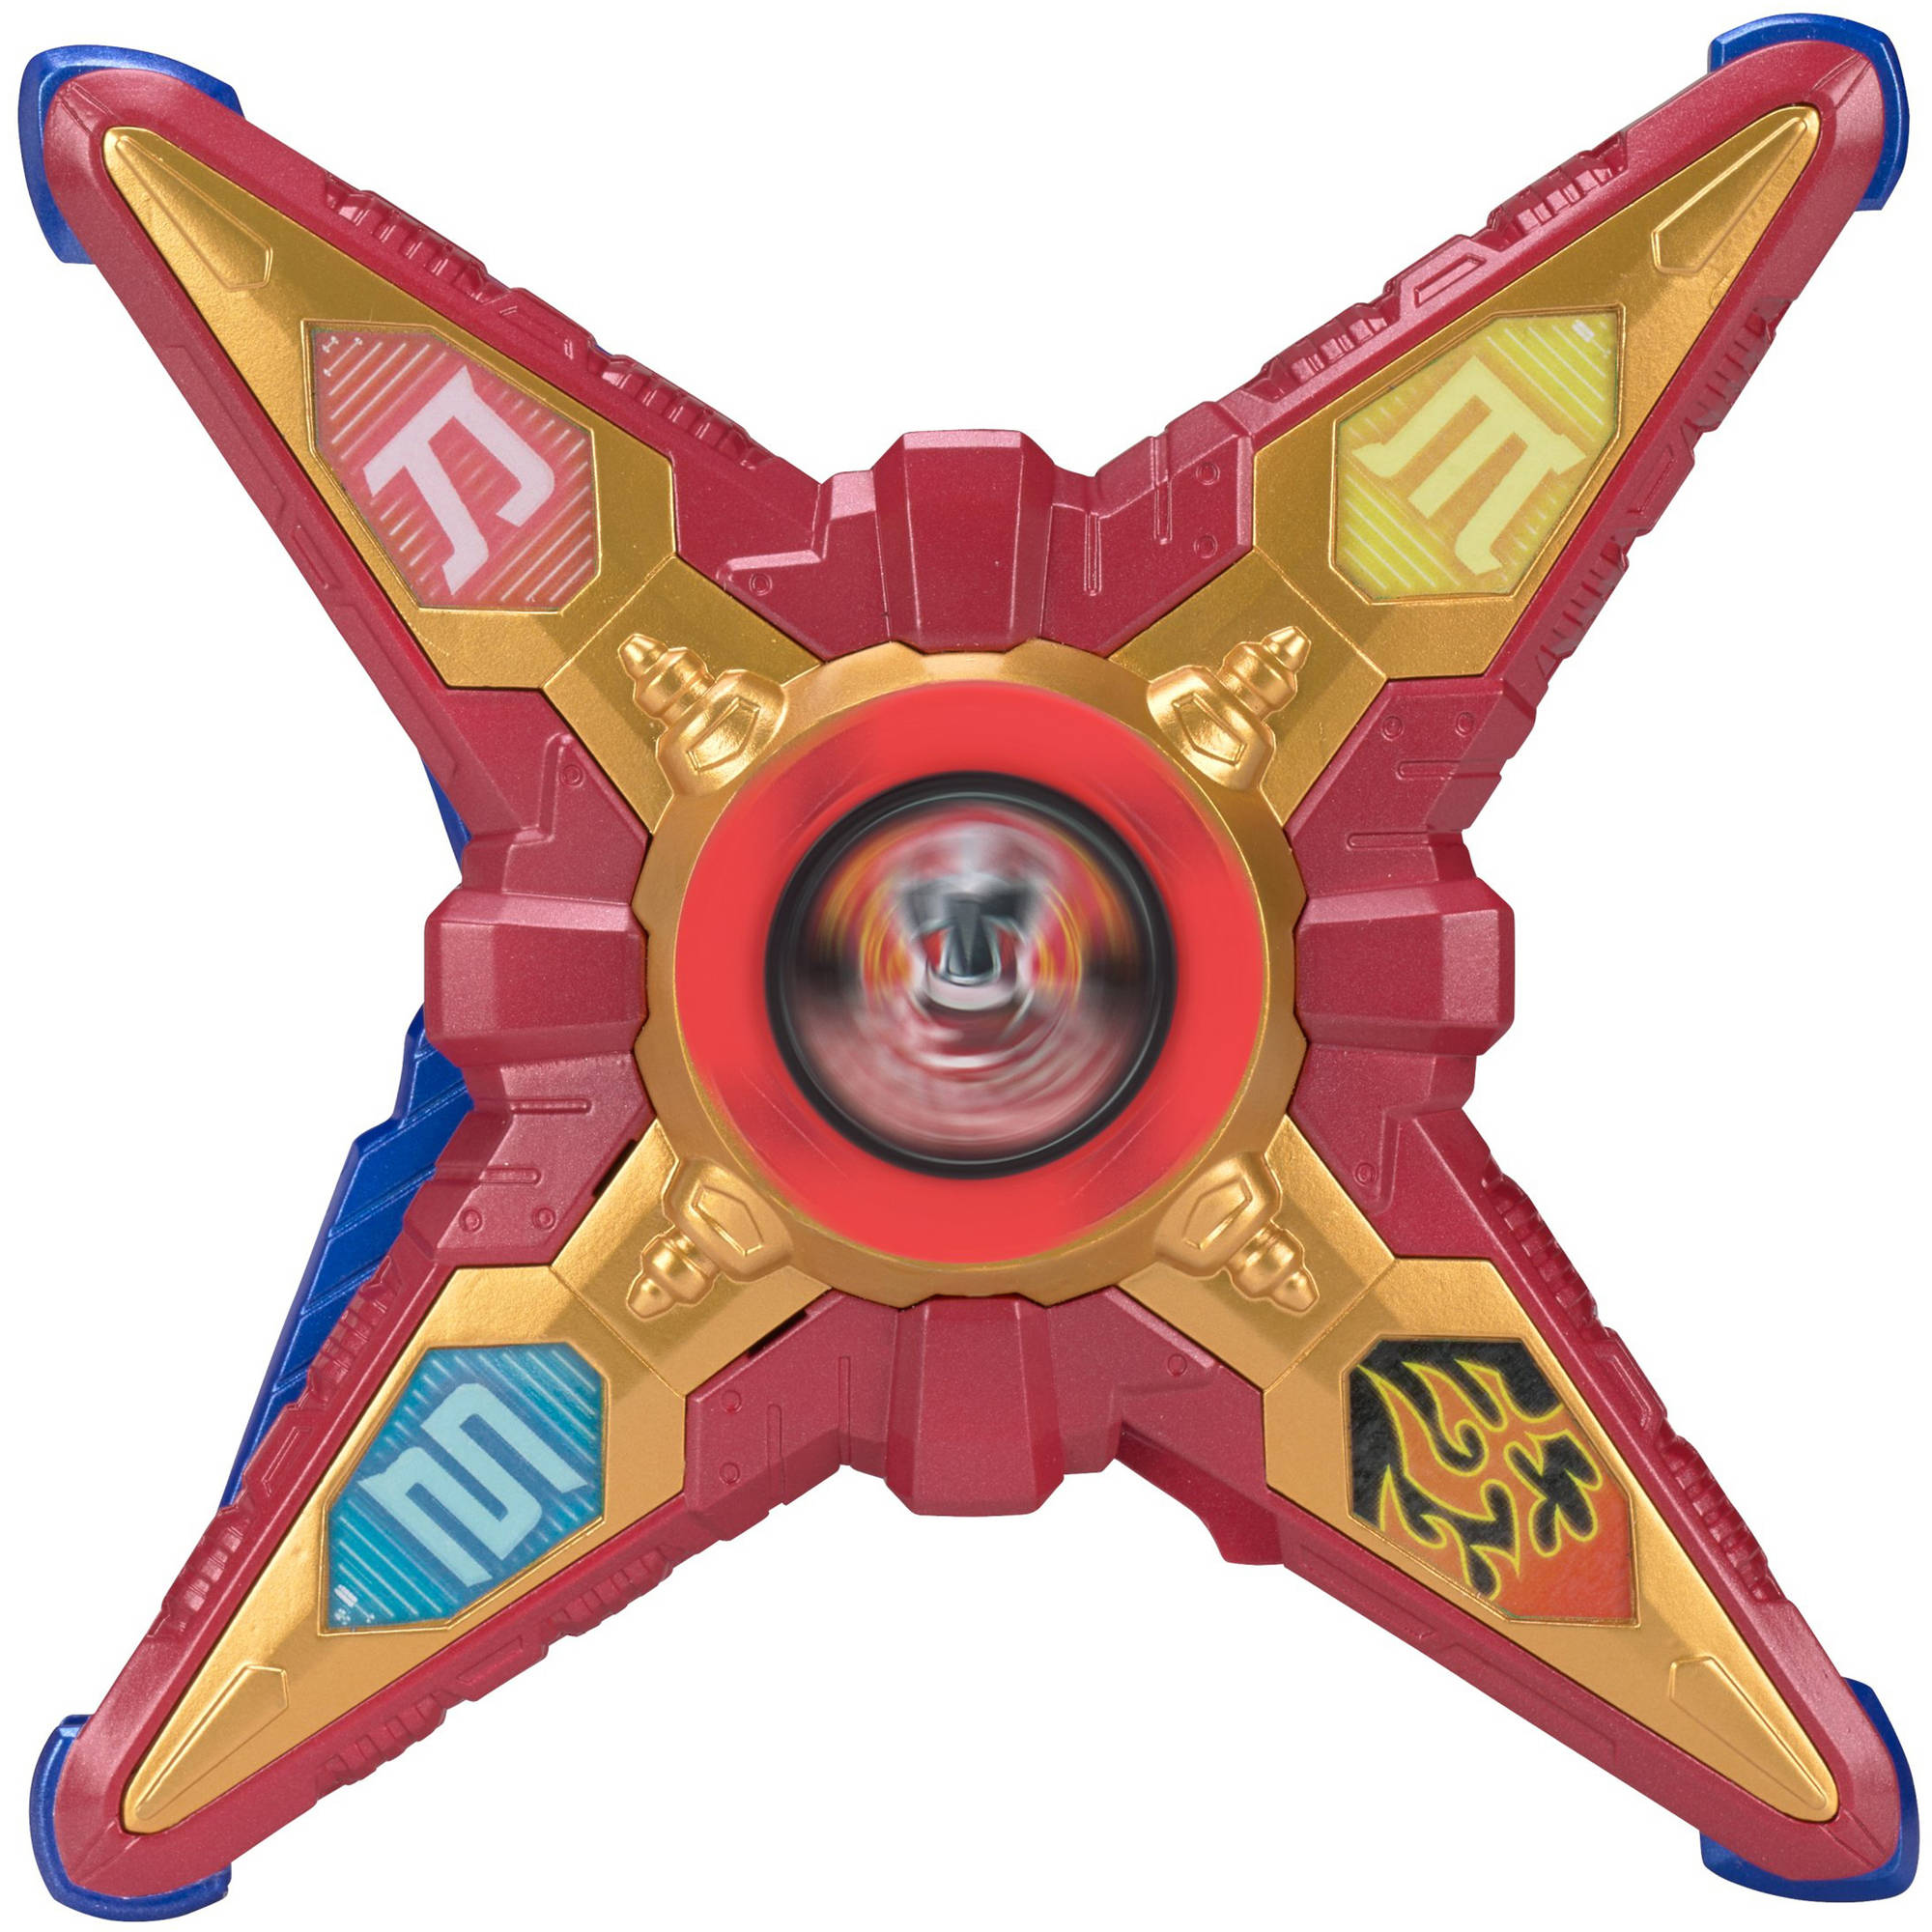 Power Rangers DX Morpher, Red